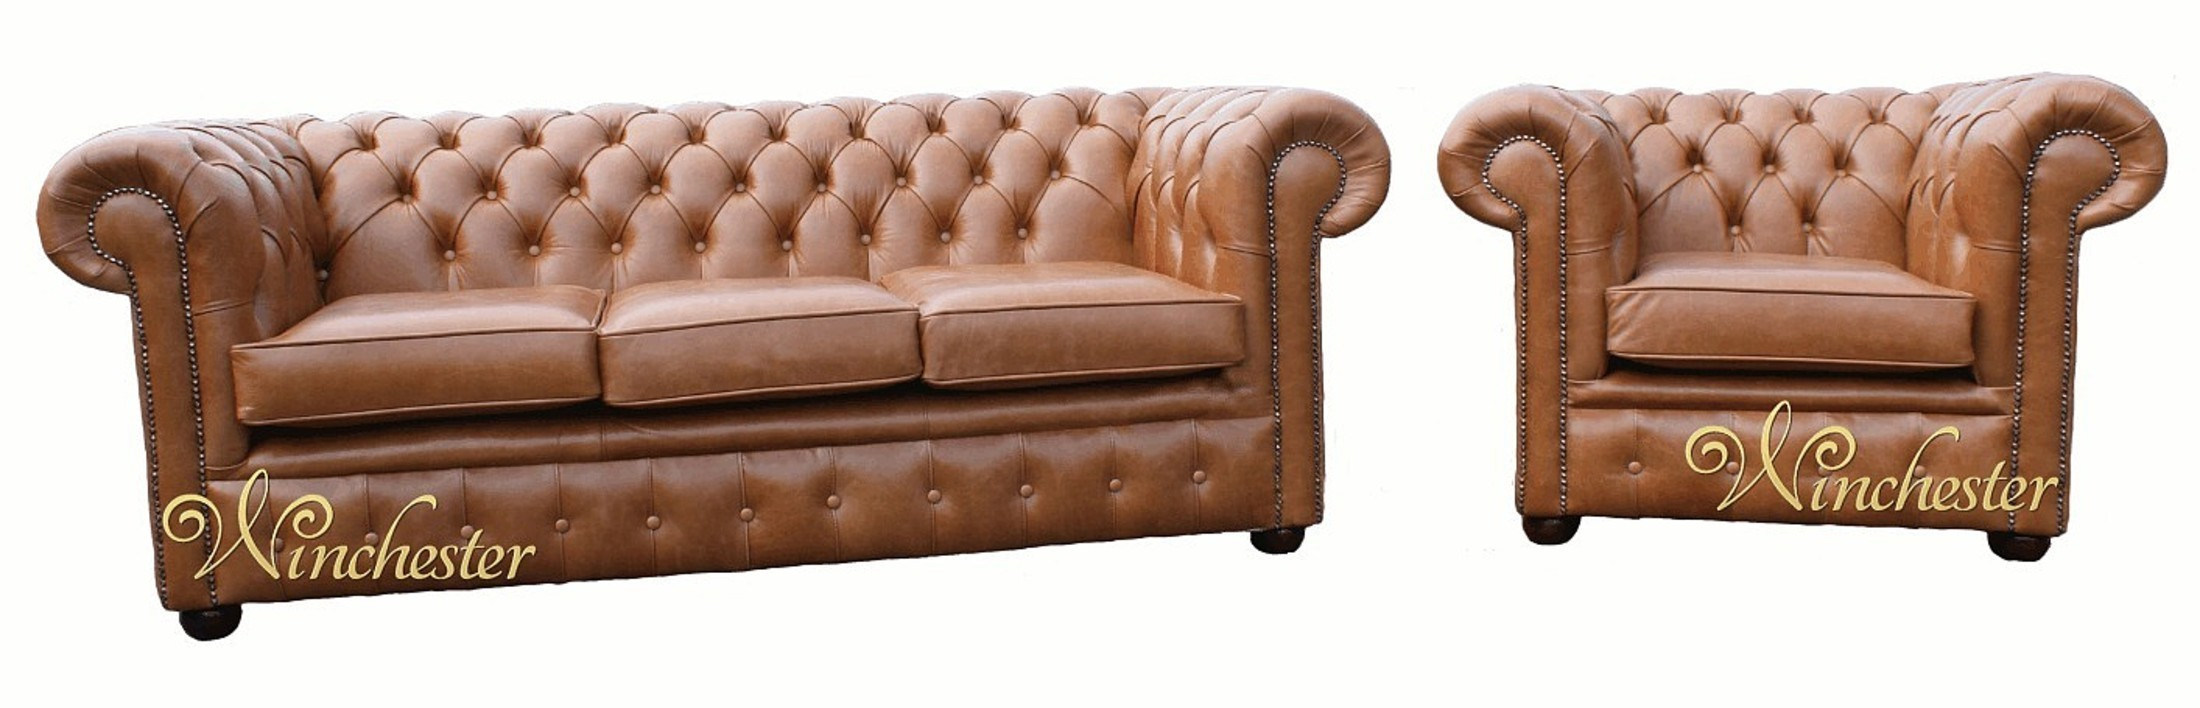 Chesterfield 3 Seater Sofa Settee Club Chair Old English Tan Leather Wc